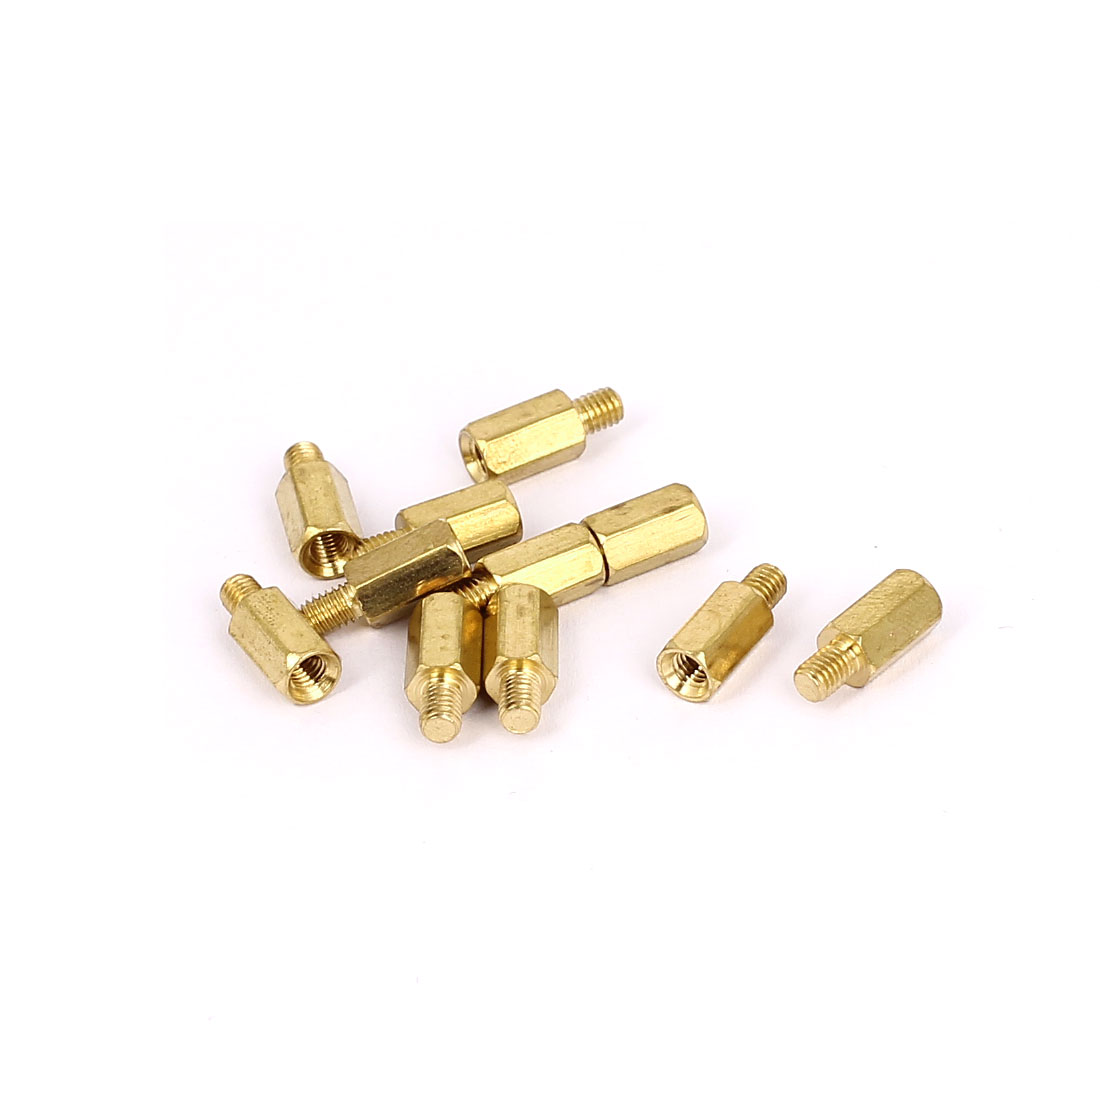 M3x8mm+4mm Male to Female Thread 0.5mm Pitch Brass Hex Standoff Spacer 10Pcs